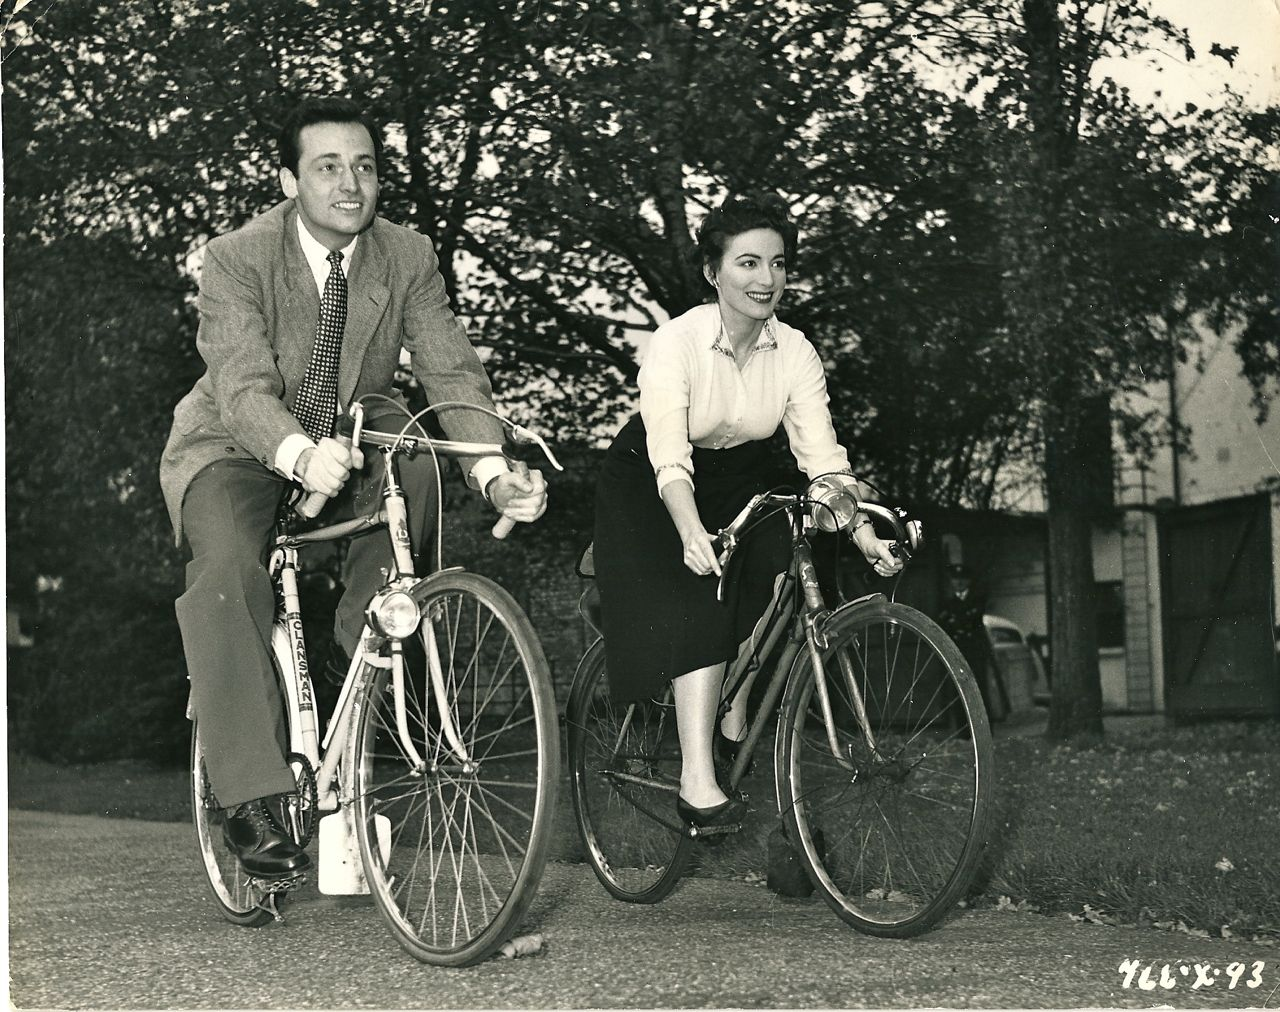 David Knight and Margo Lorenz montan en bici. (1955)